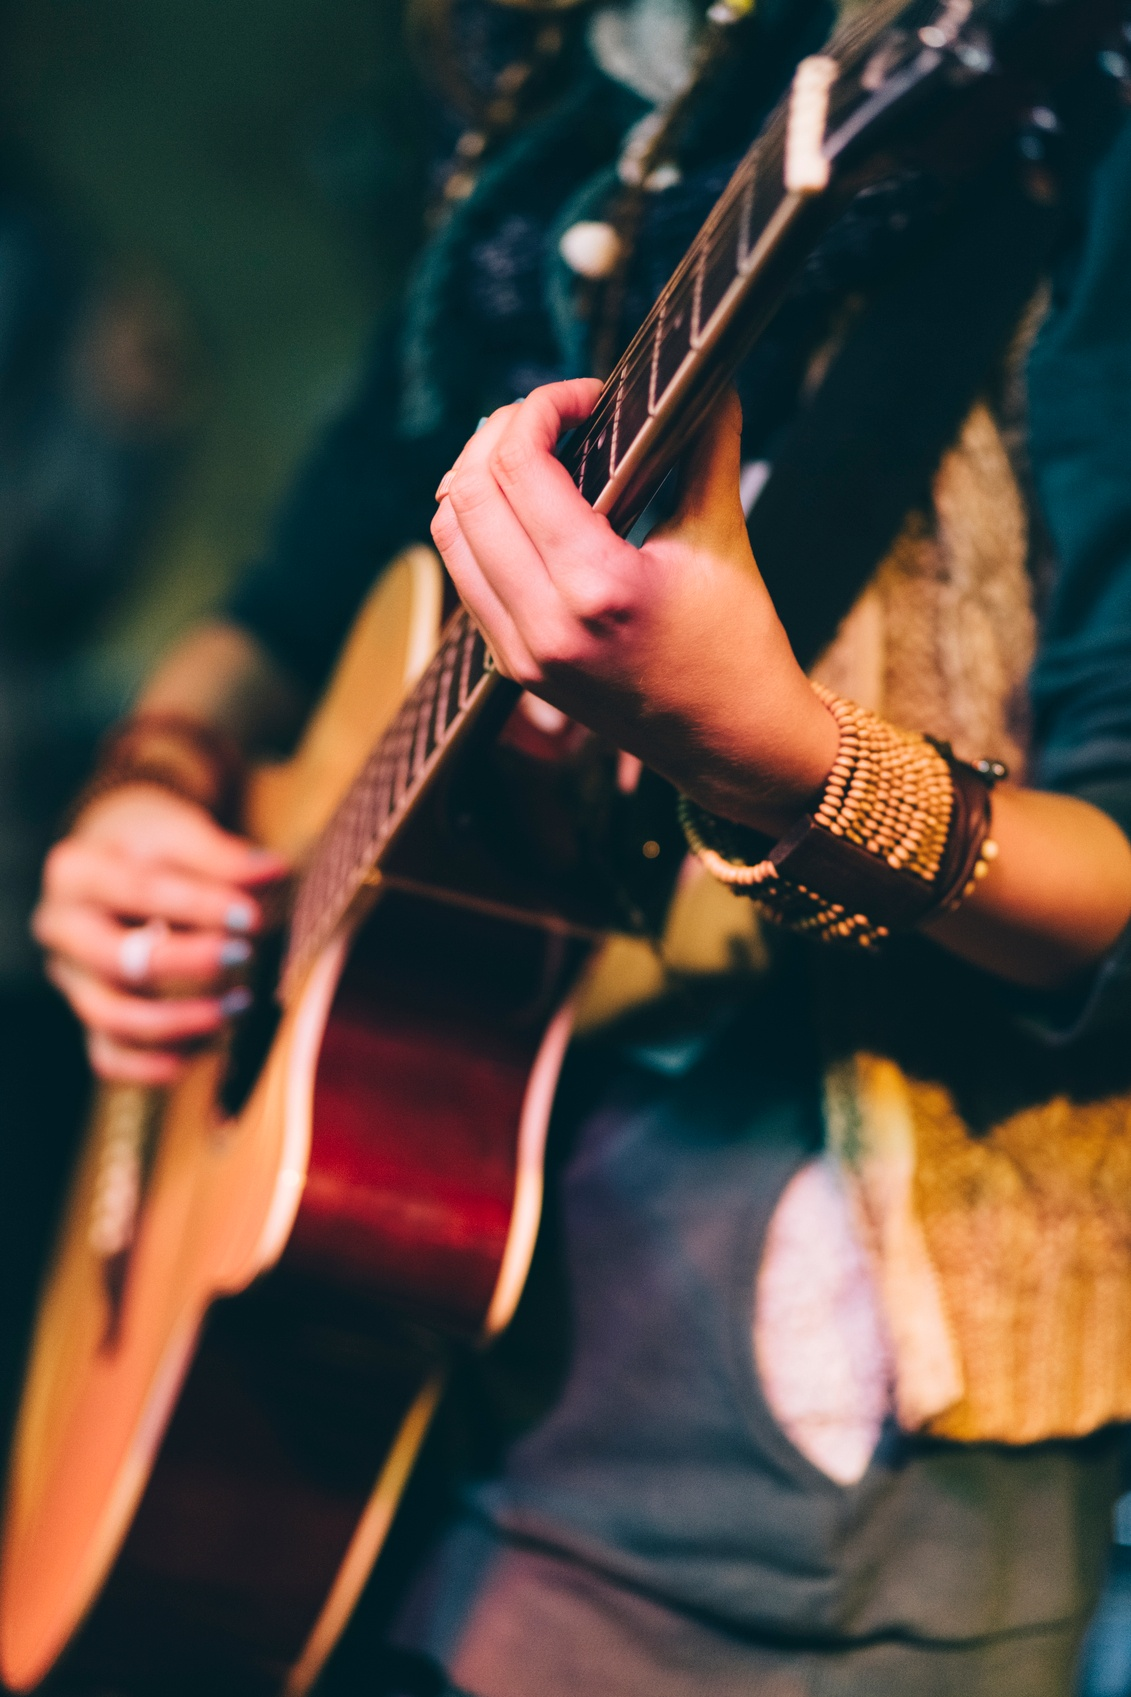 Is Musical Talent Innate or Acquired?